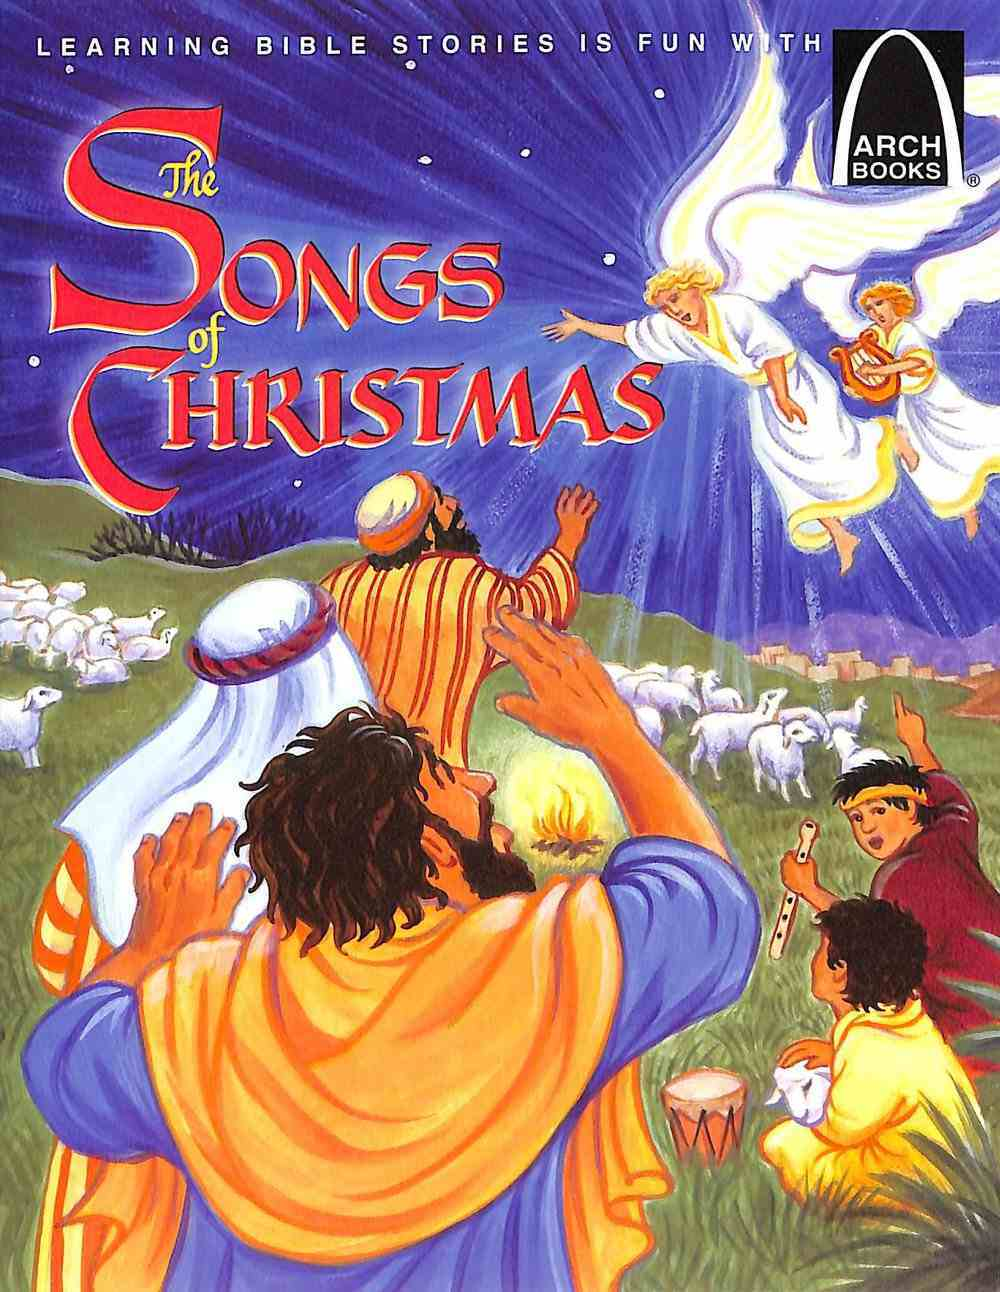 The Song of Christmas (Arch Books Series) Paperback